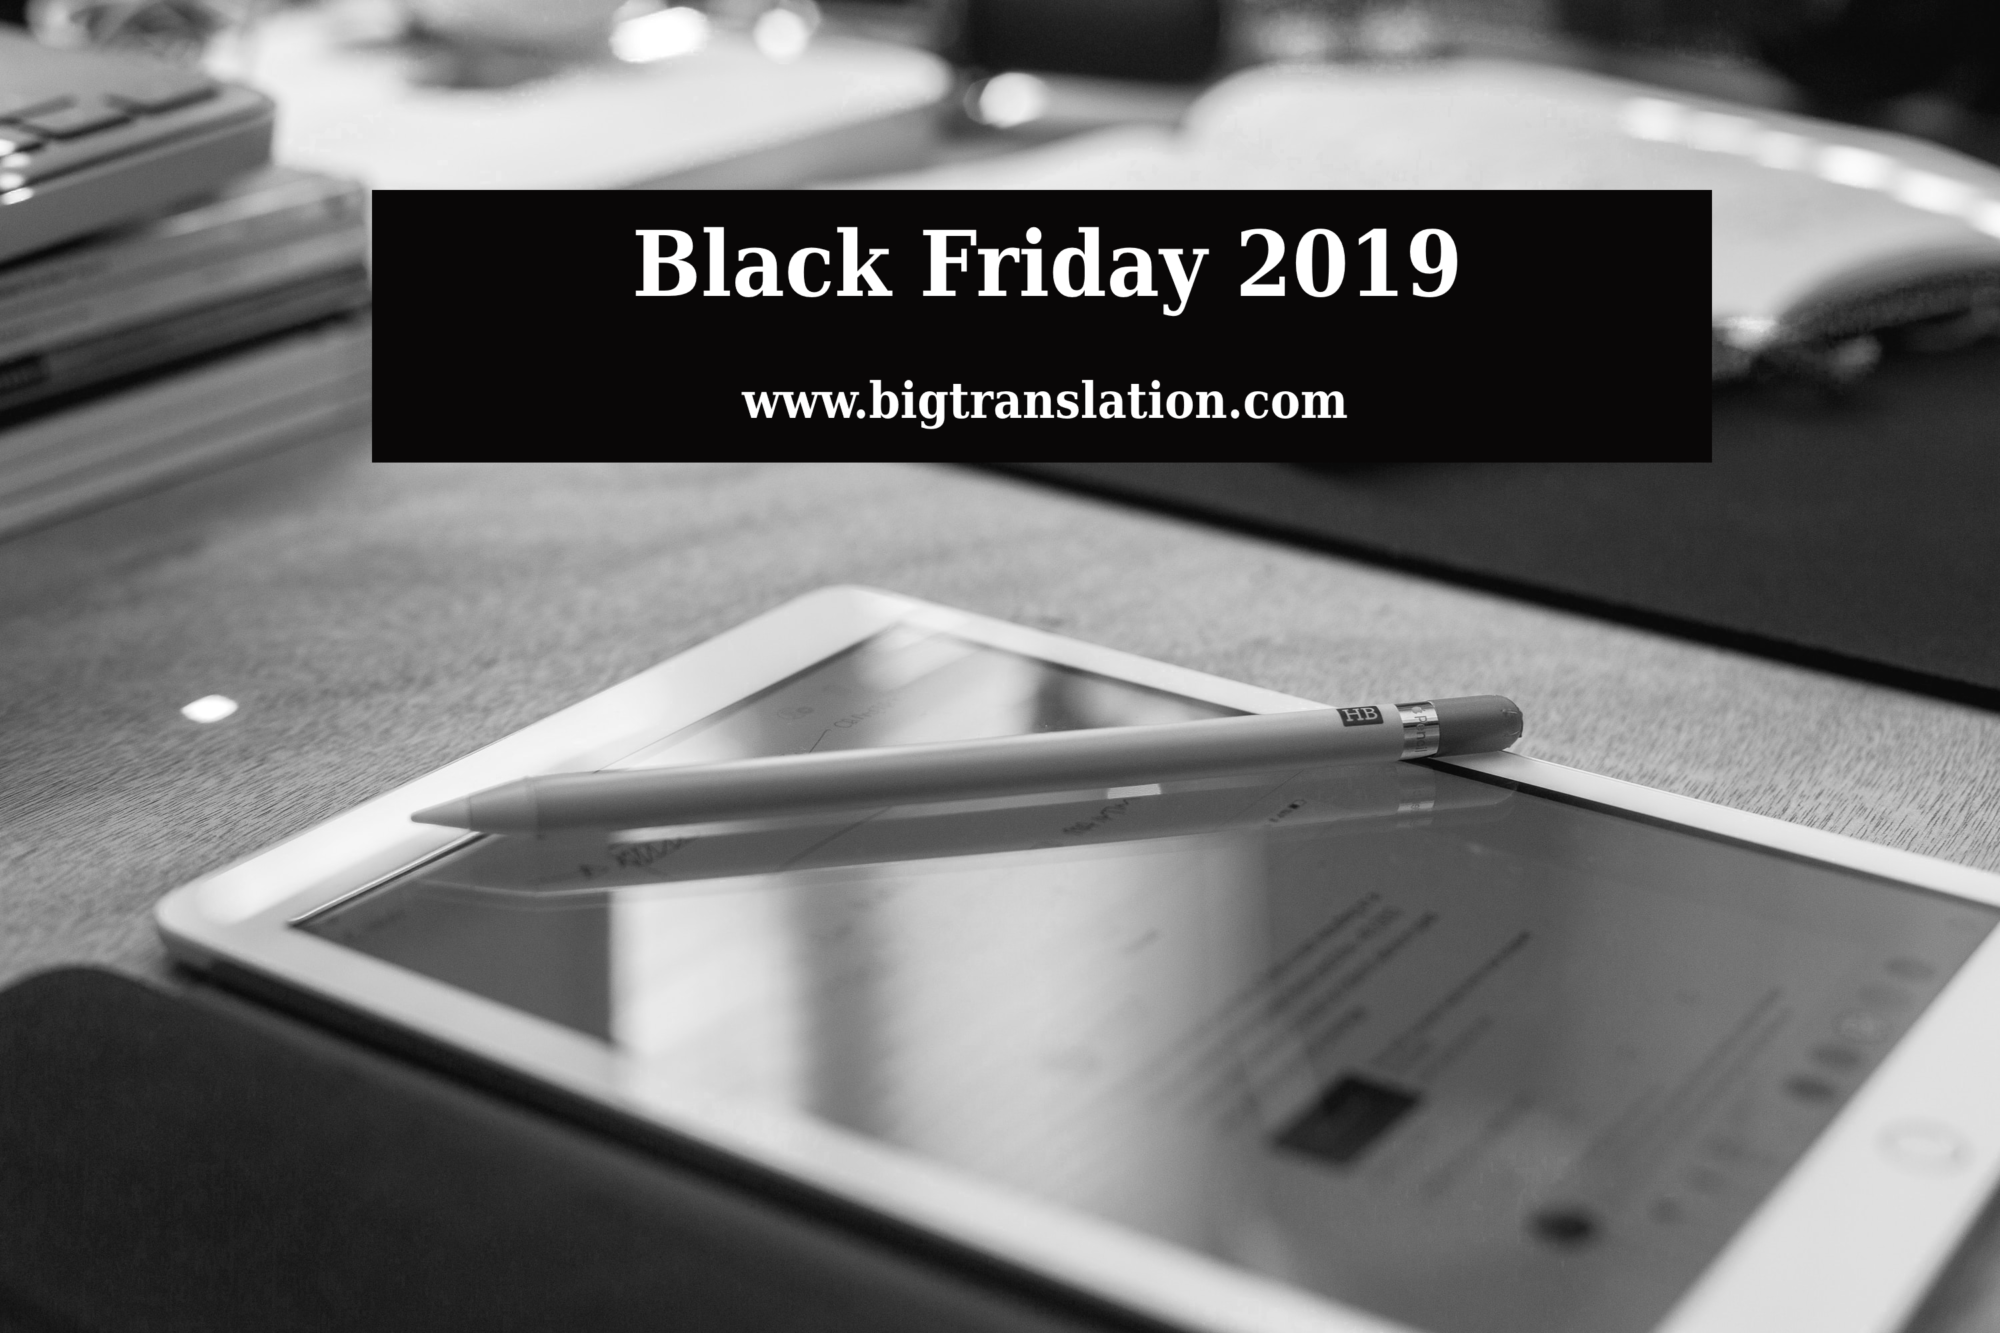 Black Friday 2019 is just around the corner… Is your business ready?